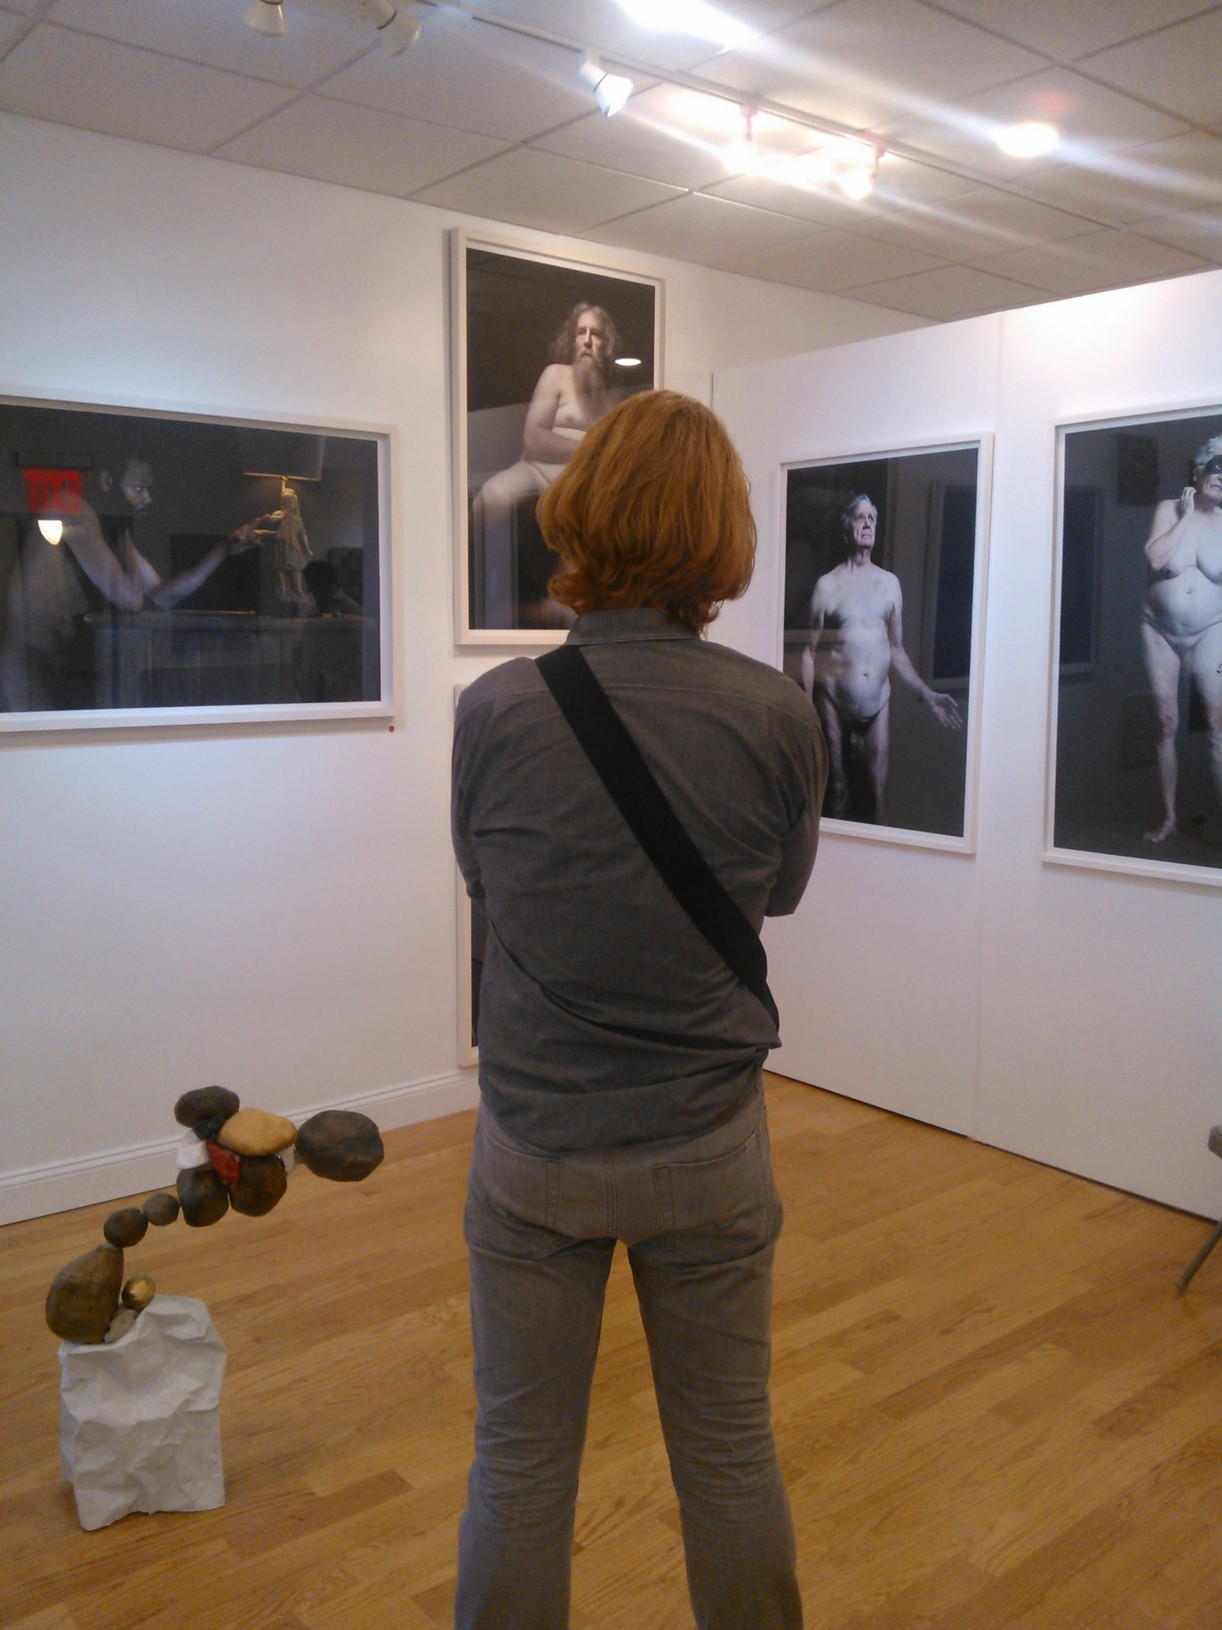 John Francis surveying his art at Verge photo by OL